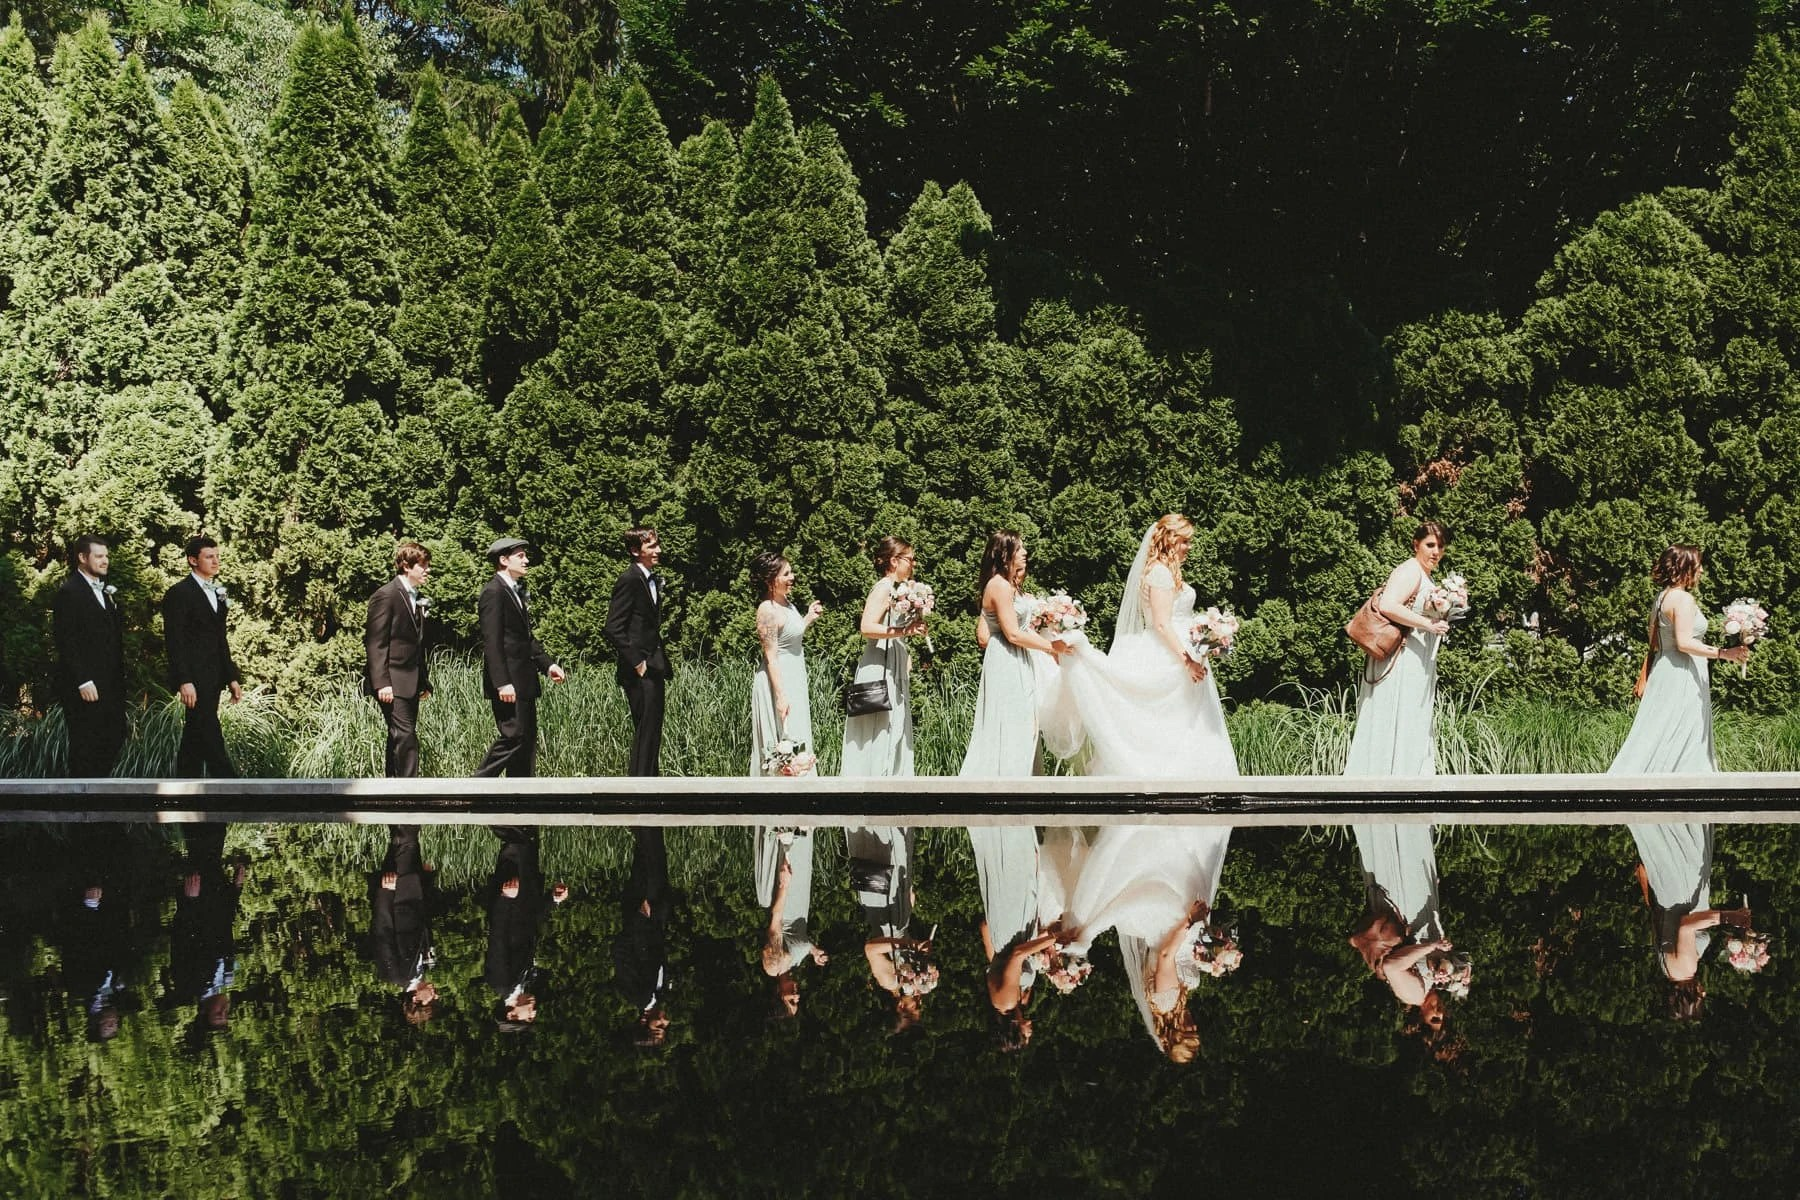 bridal Party walking across with reflection in the pond